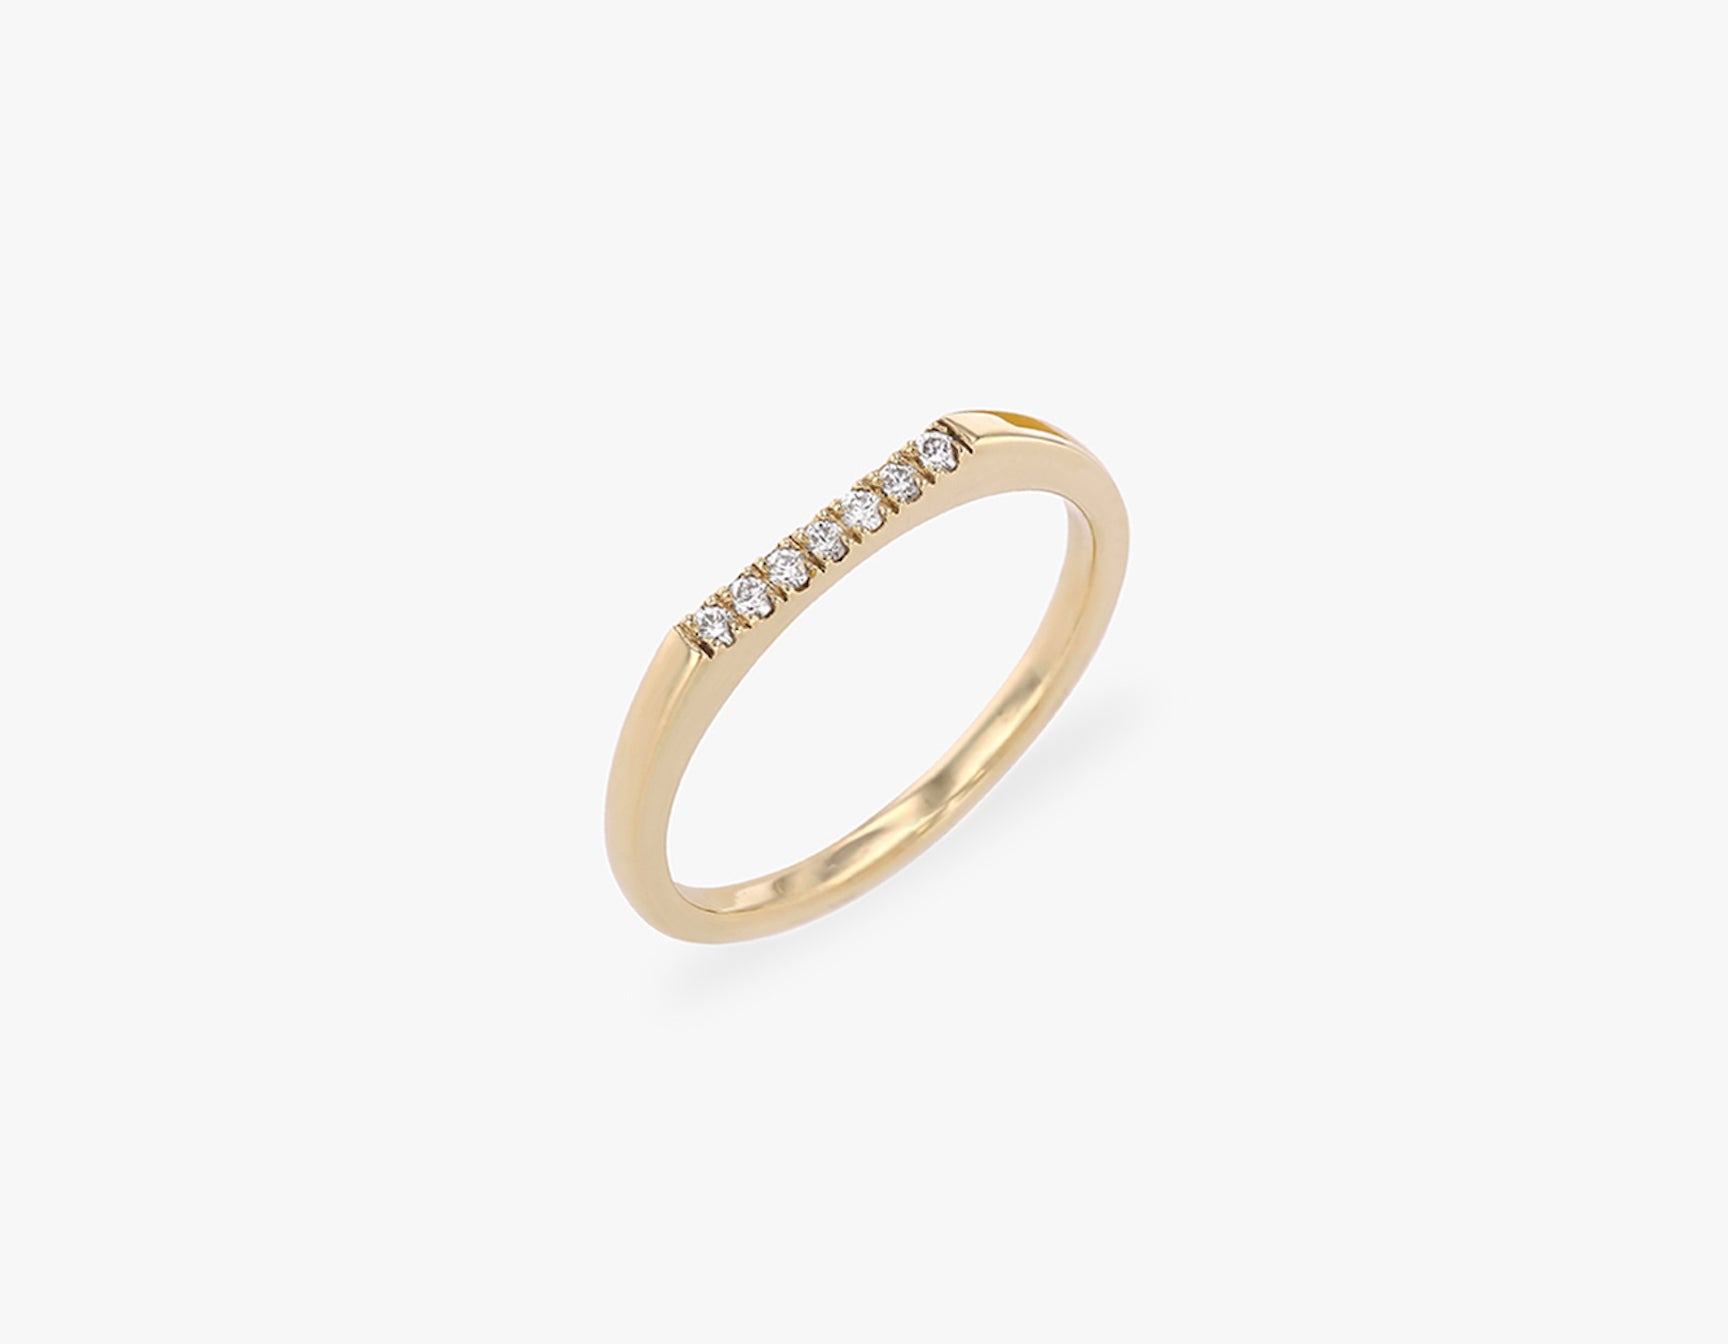 Vrai solid gold Pave Line Ring, 14K Yellow Gold